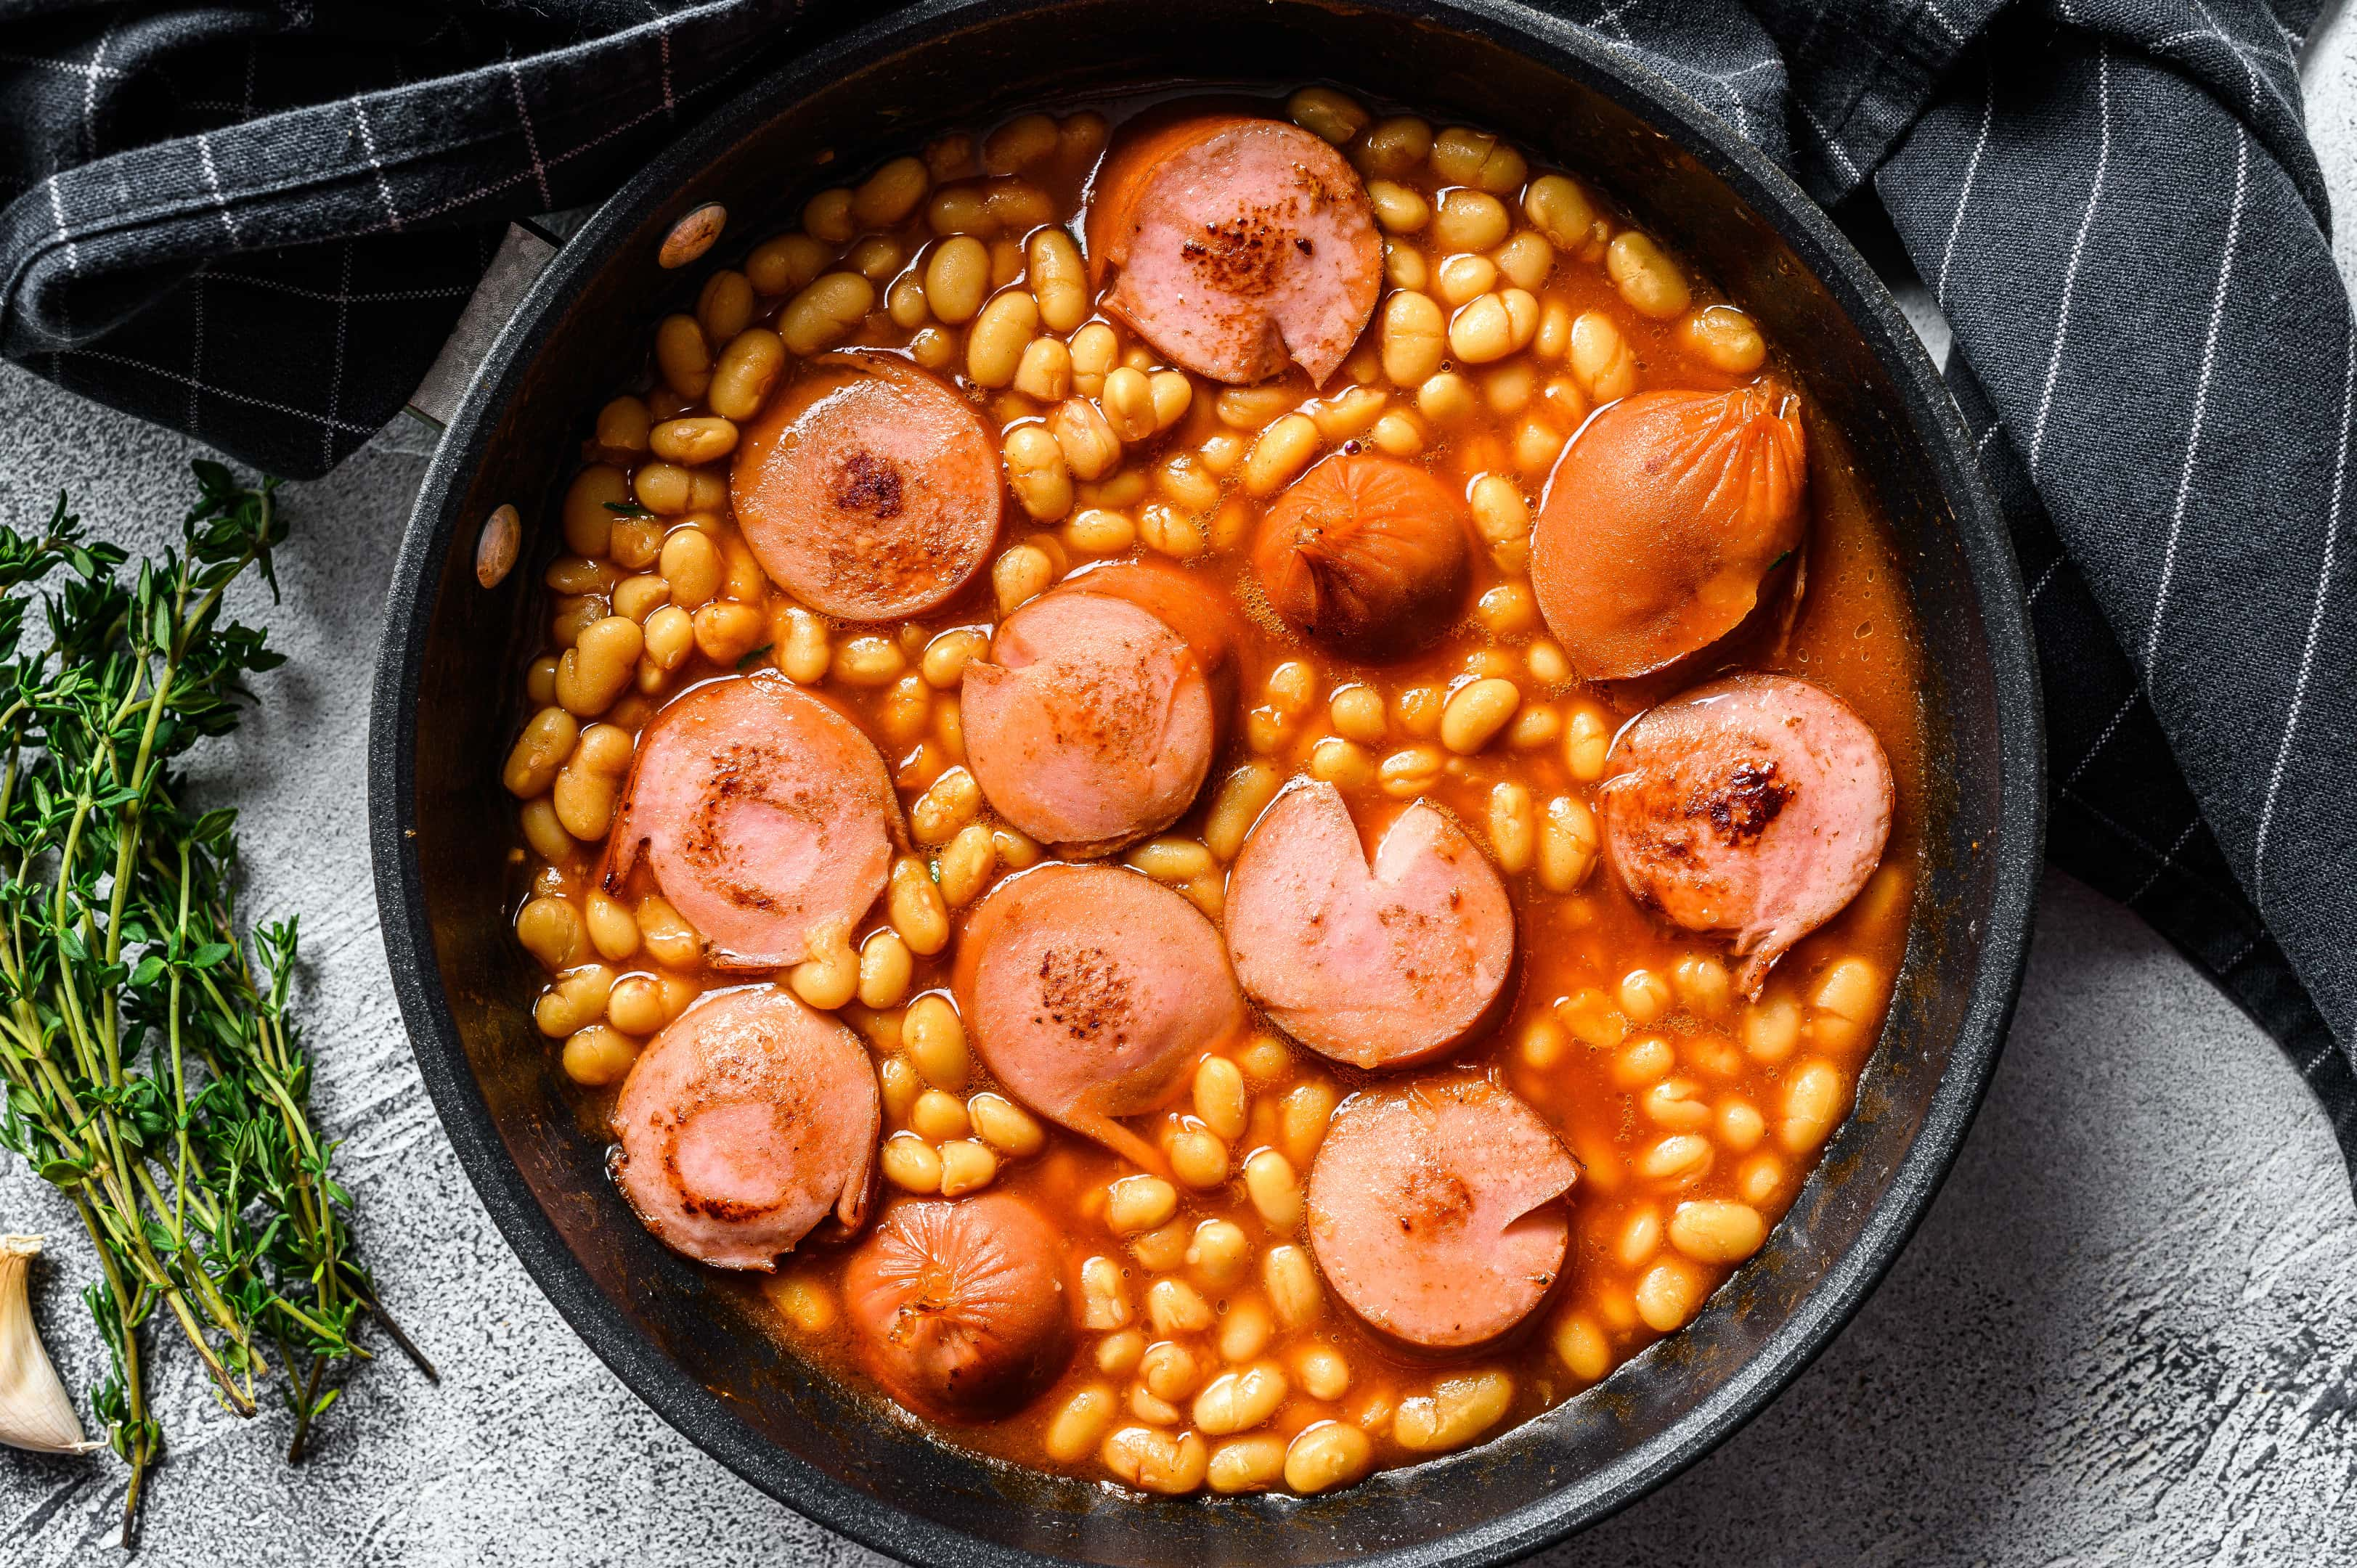 Beans with sausages in tomato sauce in a pan